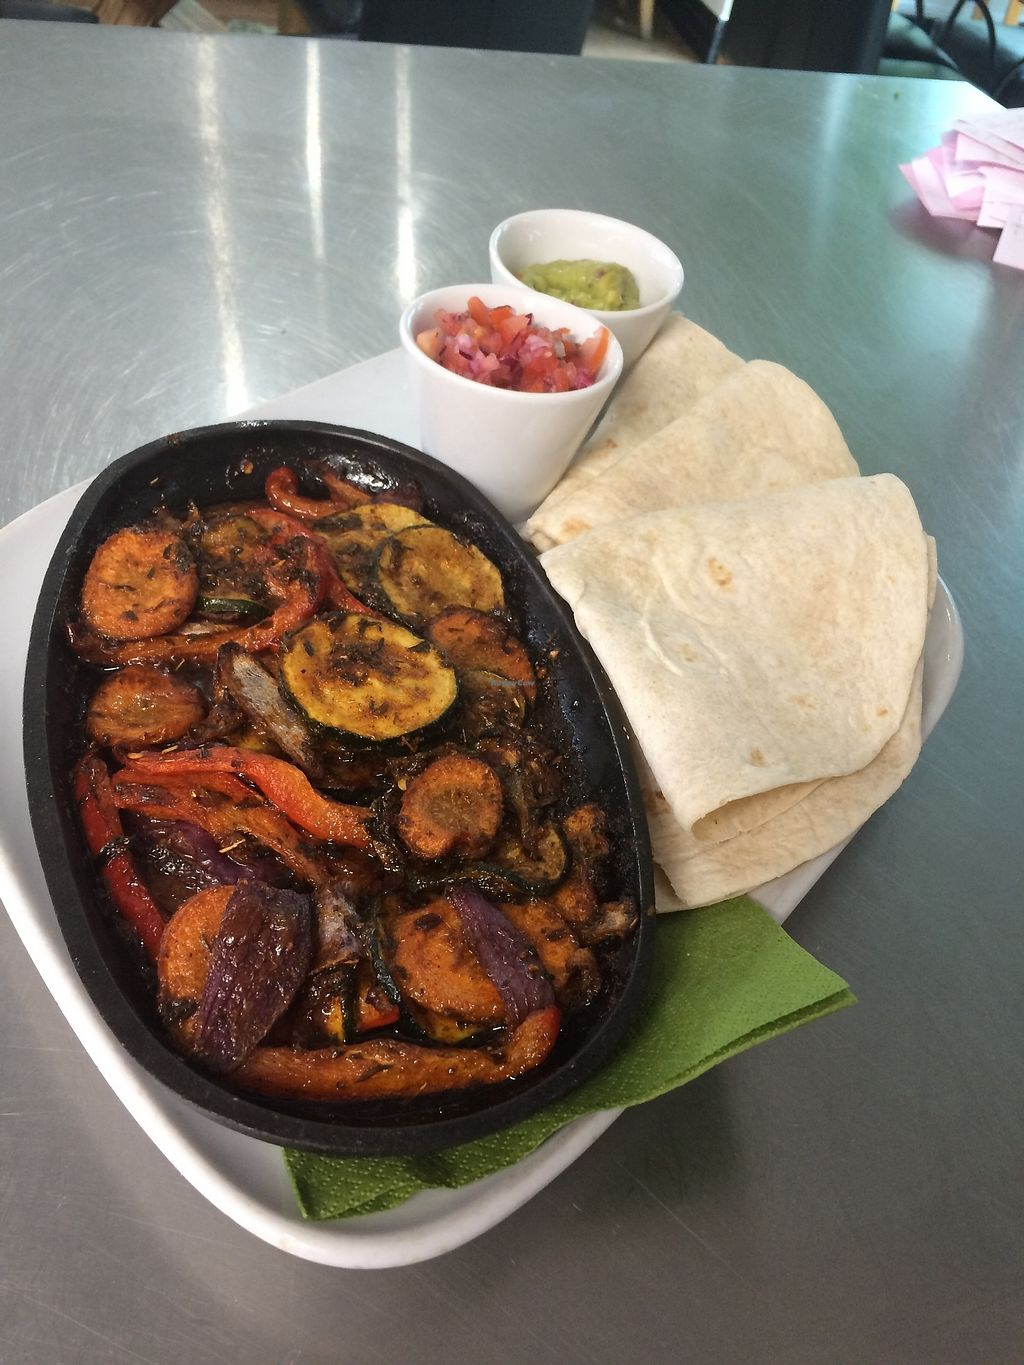 """Photo of The Green Rooms  by <a href=""""/members/profile/Aimeebrooks9"""">Aimeebrooks9</a> <br/>Mixed vegetable fajitas  <br/> April 13, 2018  - <a href='/contact/abuse/image/117658/385352'>Report</a>"""